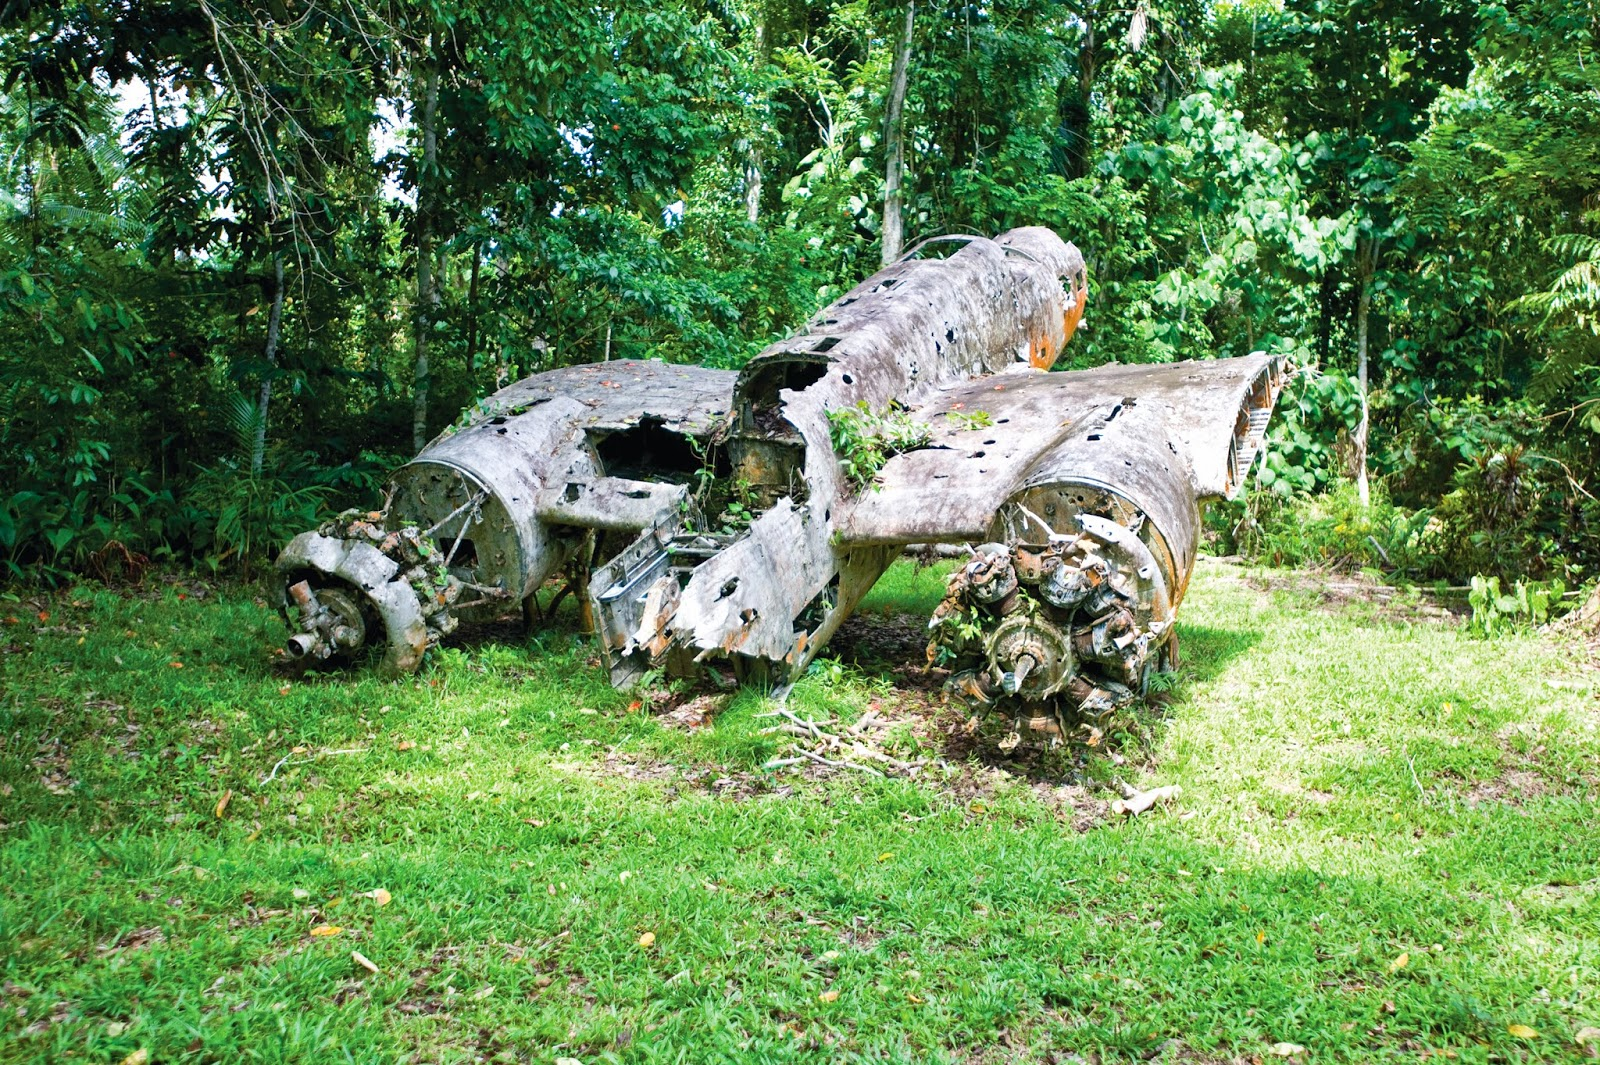 A World War II plane wreck near Madang, Papua New Guinea